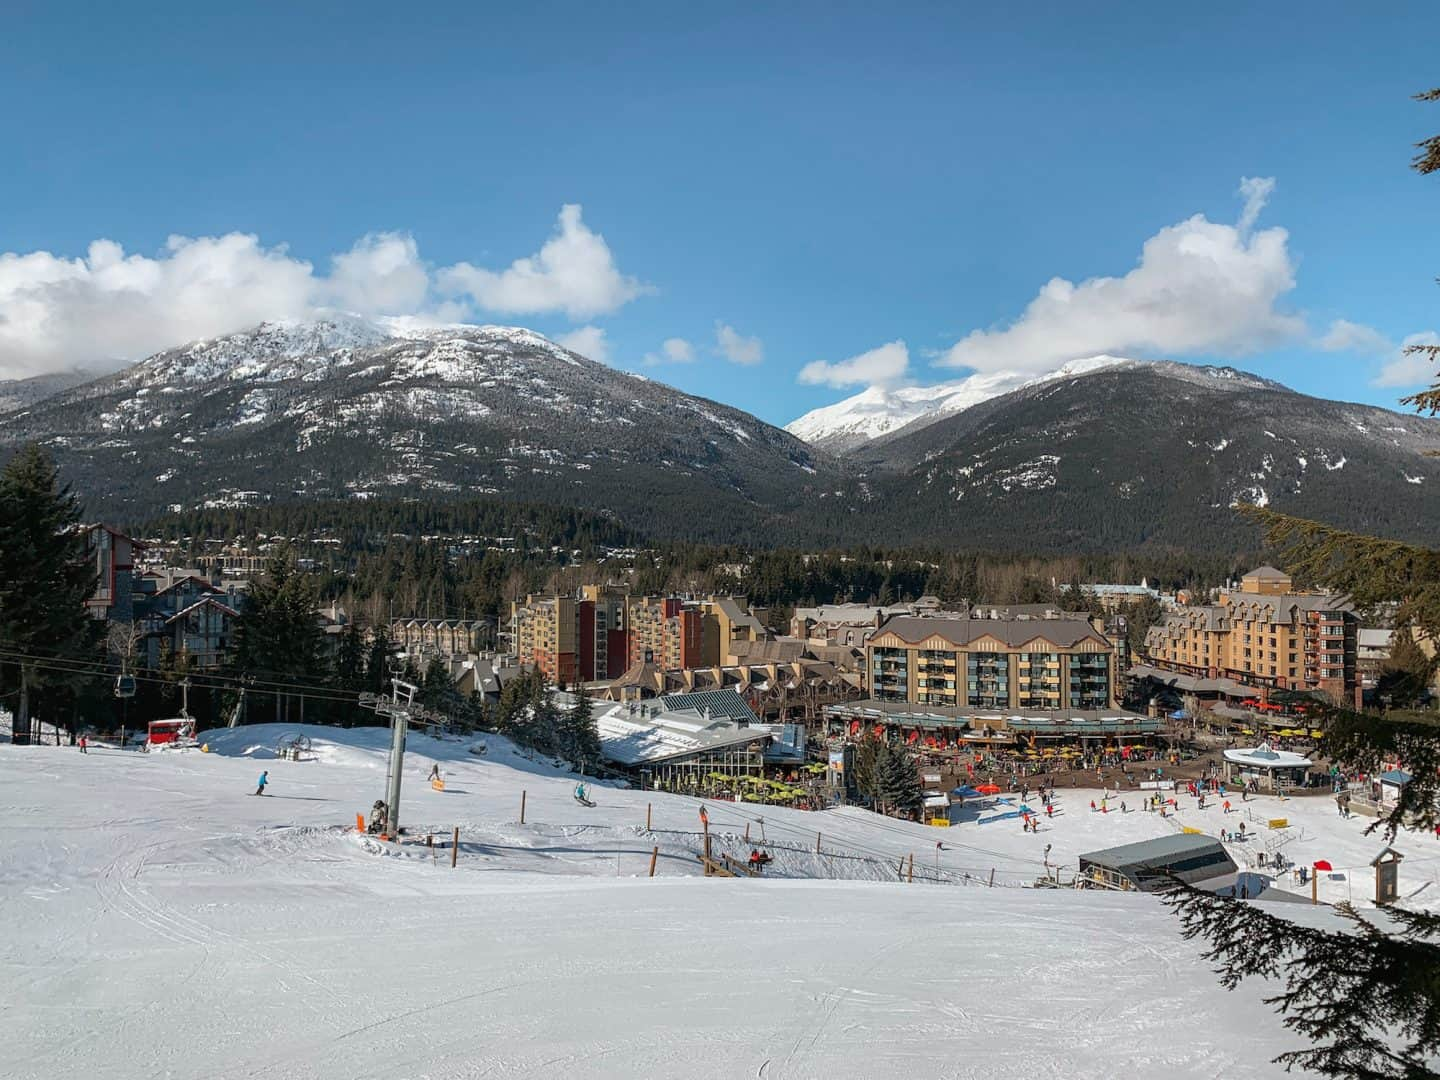 Ski at the Whistler Blackcomb in Whistler, British Columbia!